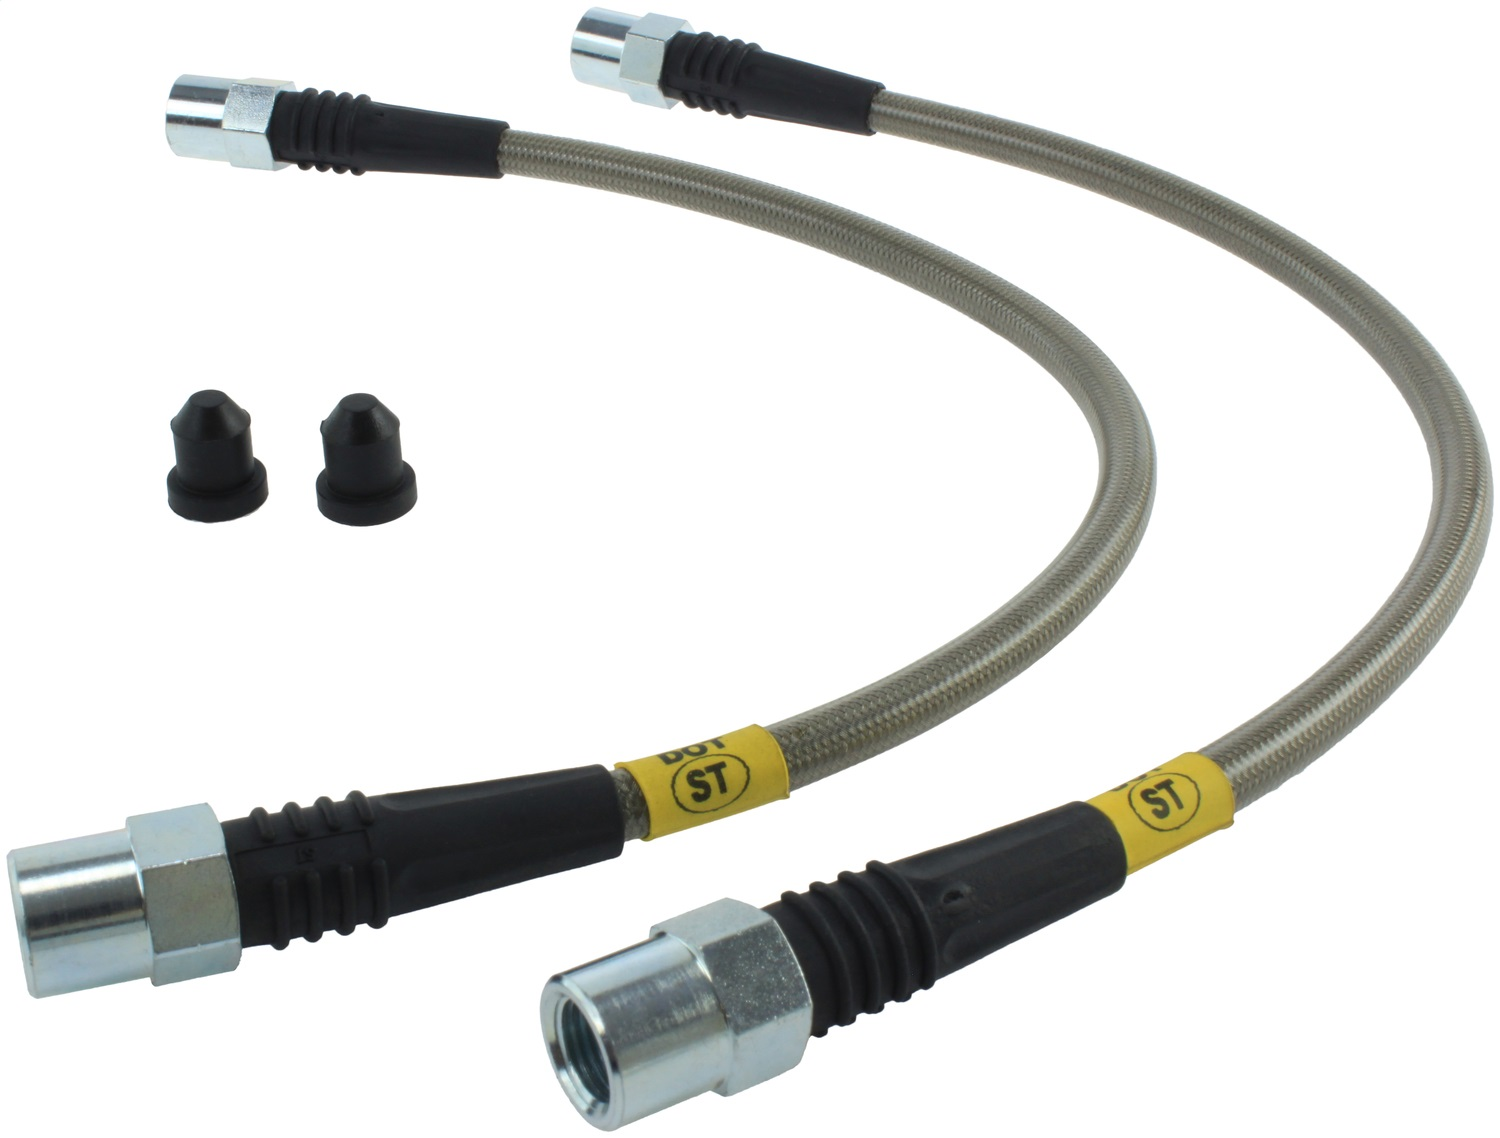 StopTech 950.33018 Stainless Steel Braided Brake Hose Kit Fits A6 A6 Quattro S6